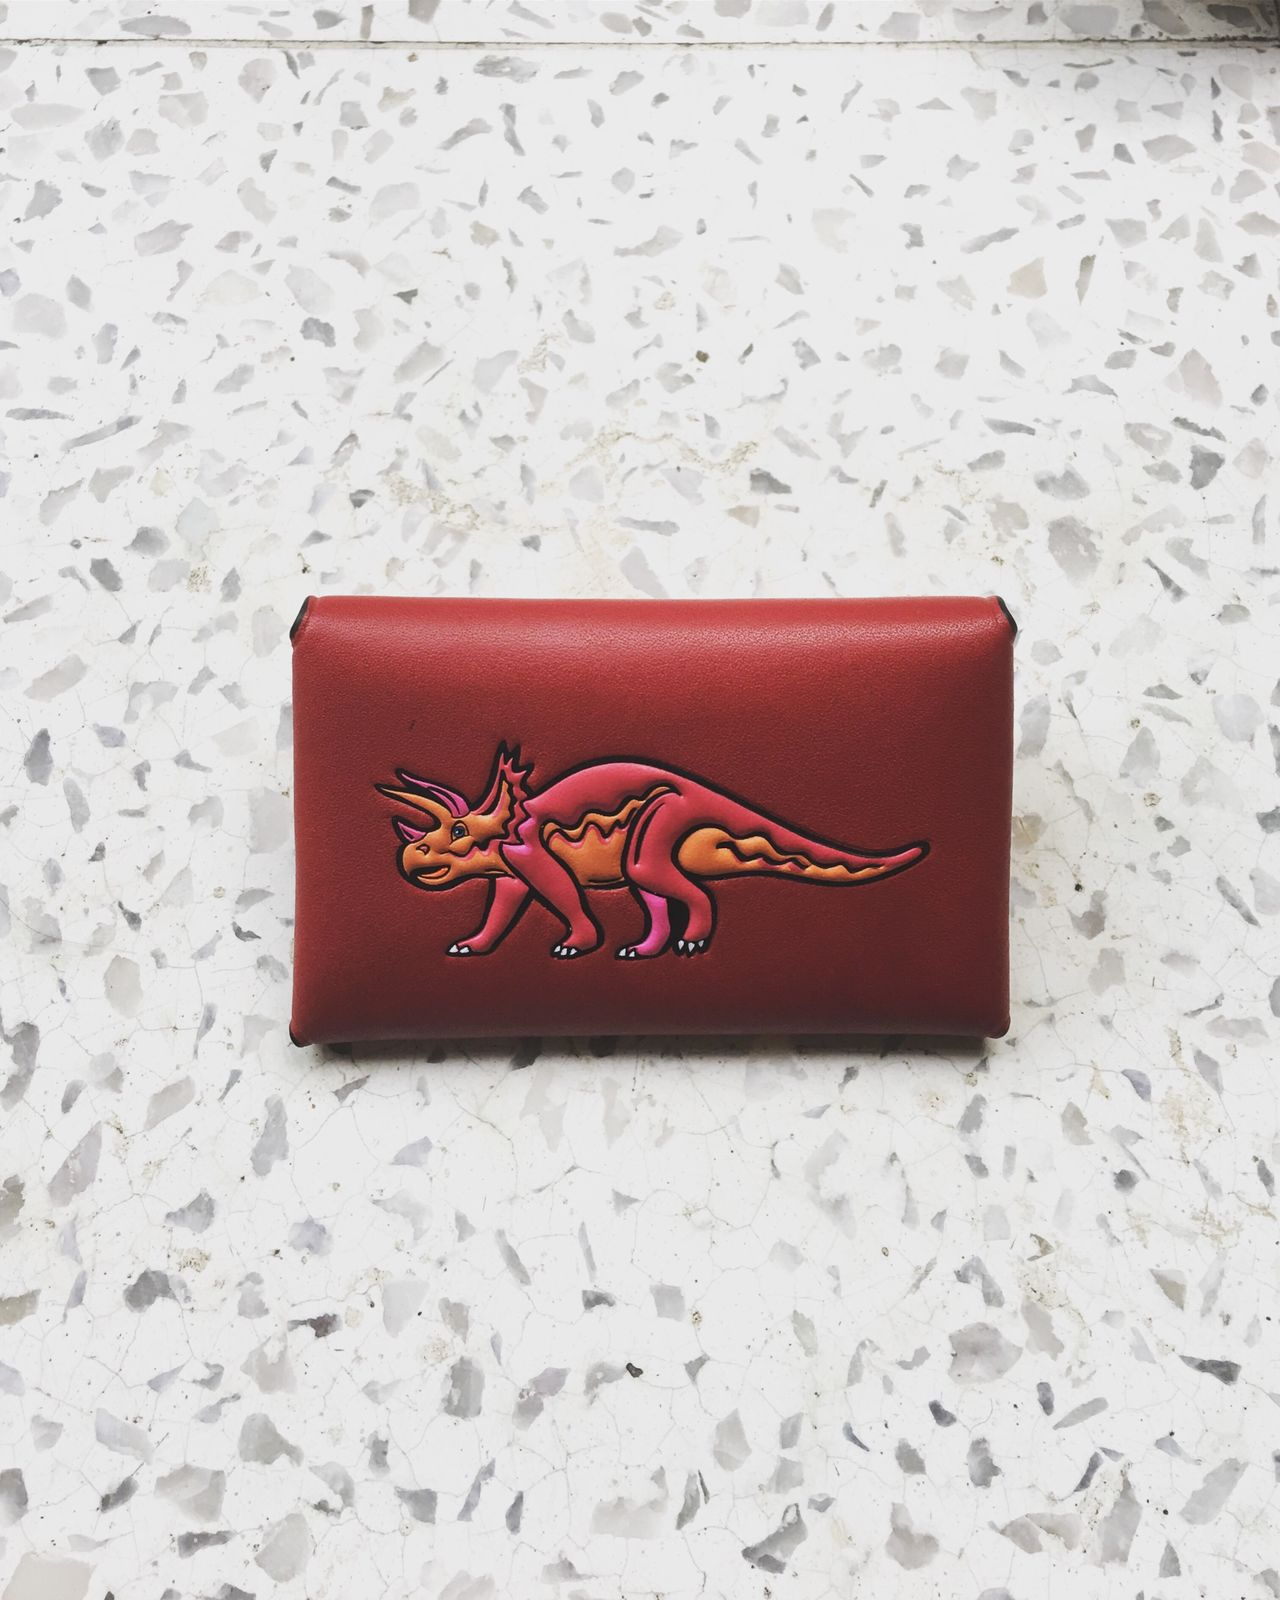 Wallet Dinasour Coach Bag Designer  Brand Still Life No People Indoors  Table Paper Red Close-up Day Visual Feast Summer Views